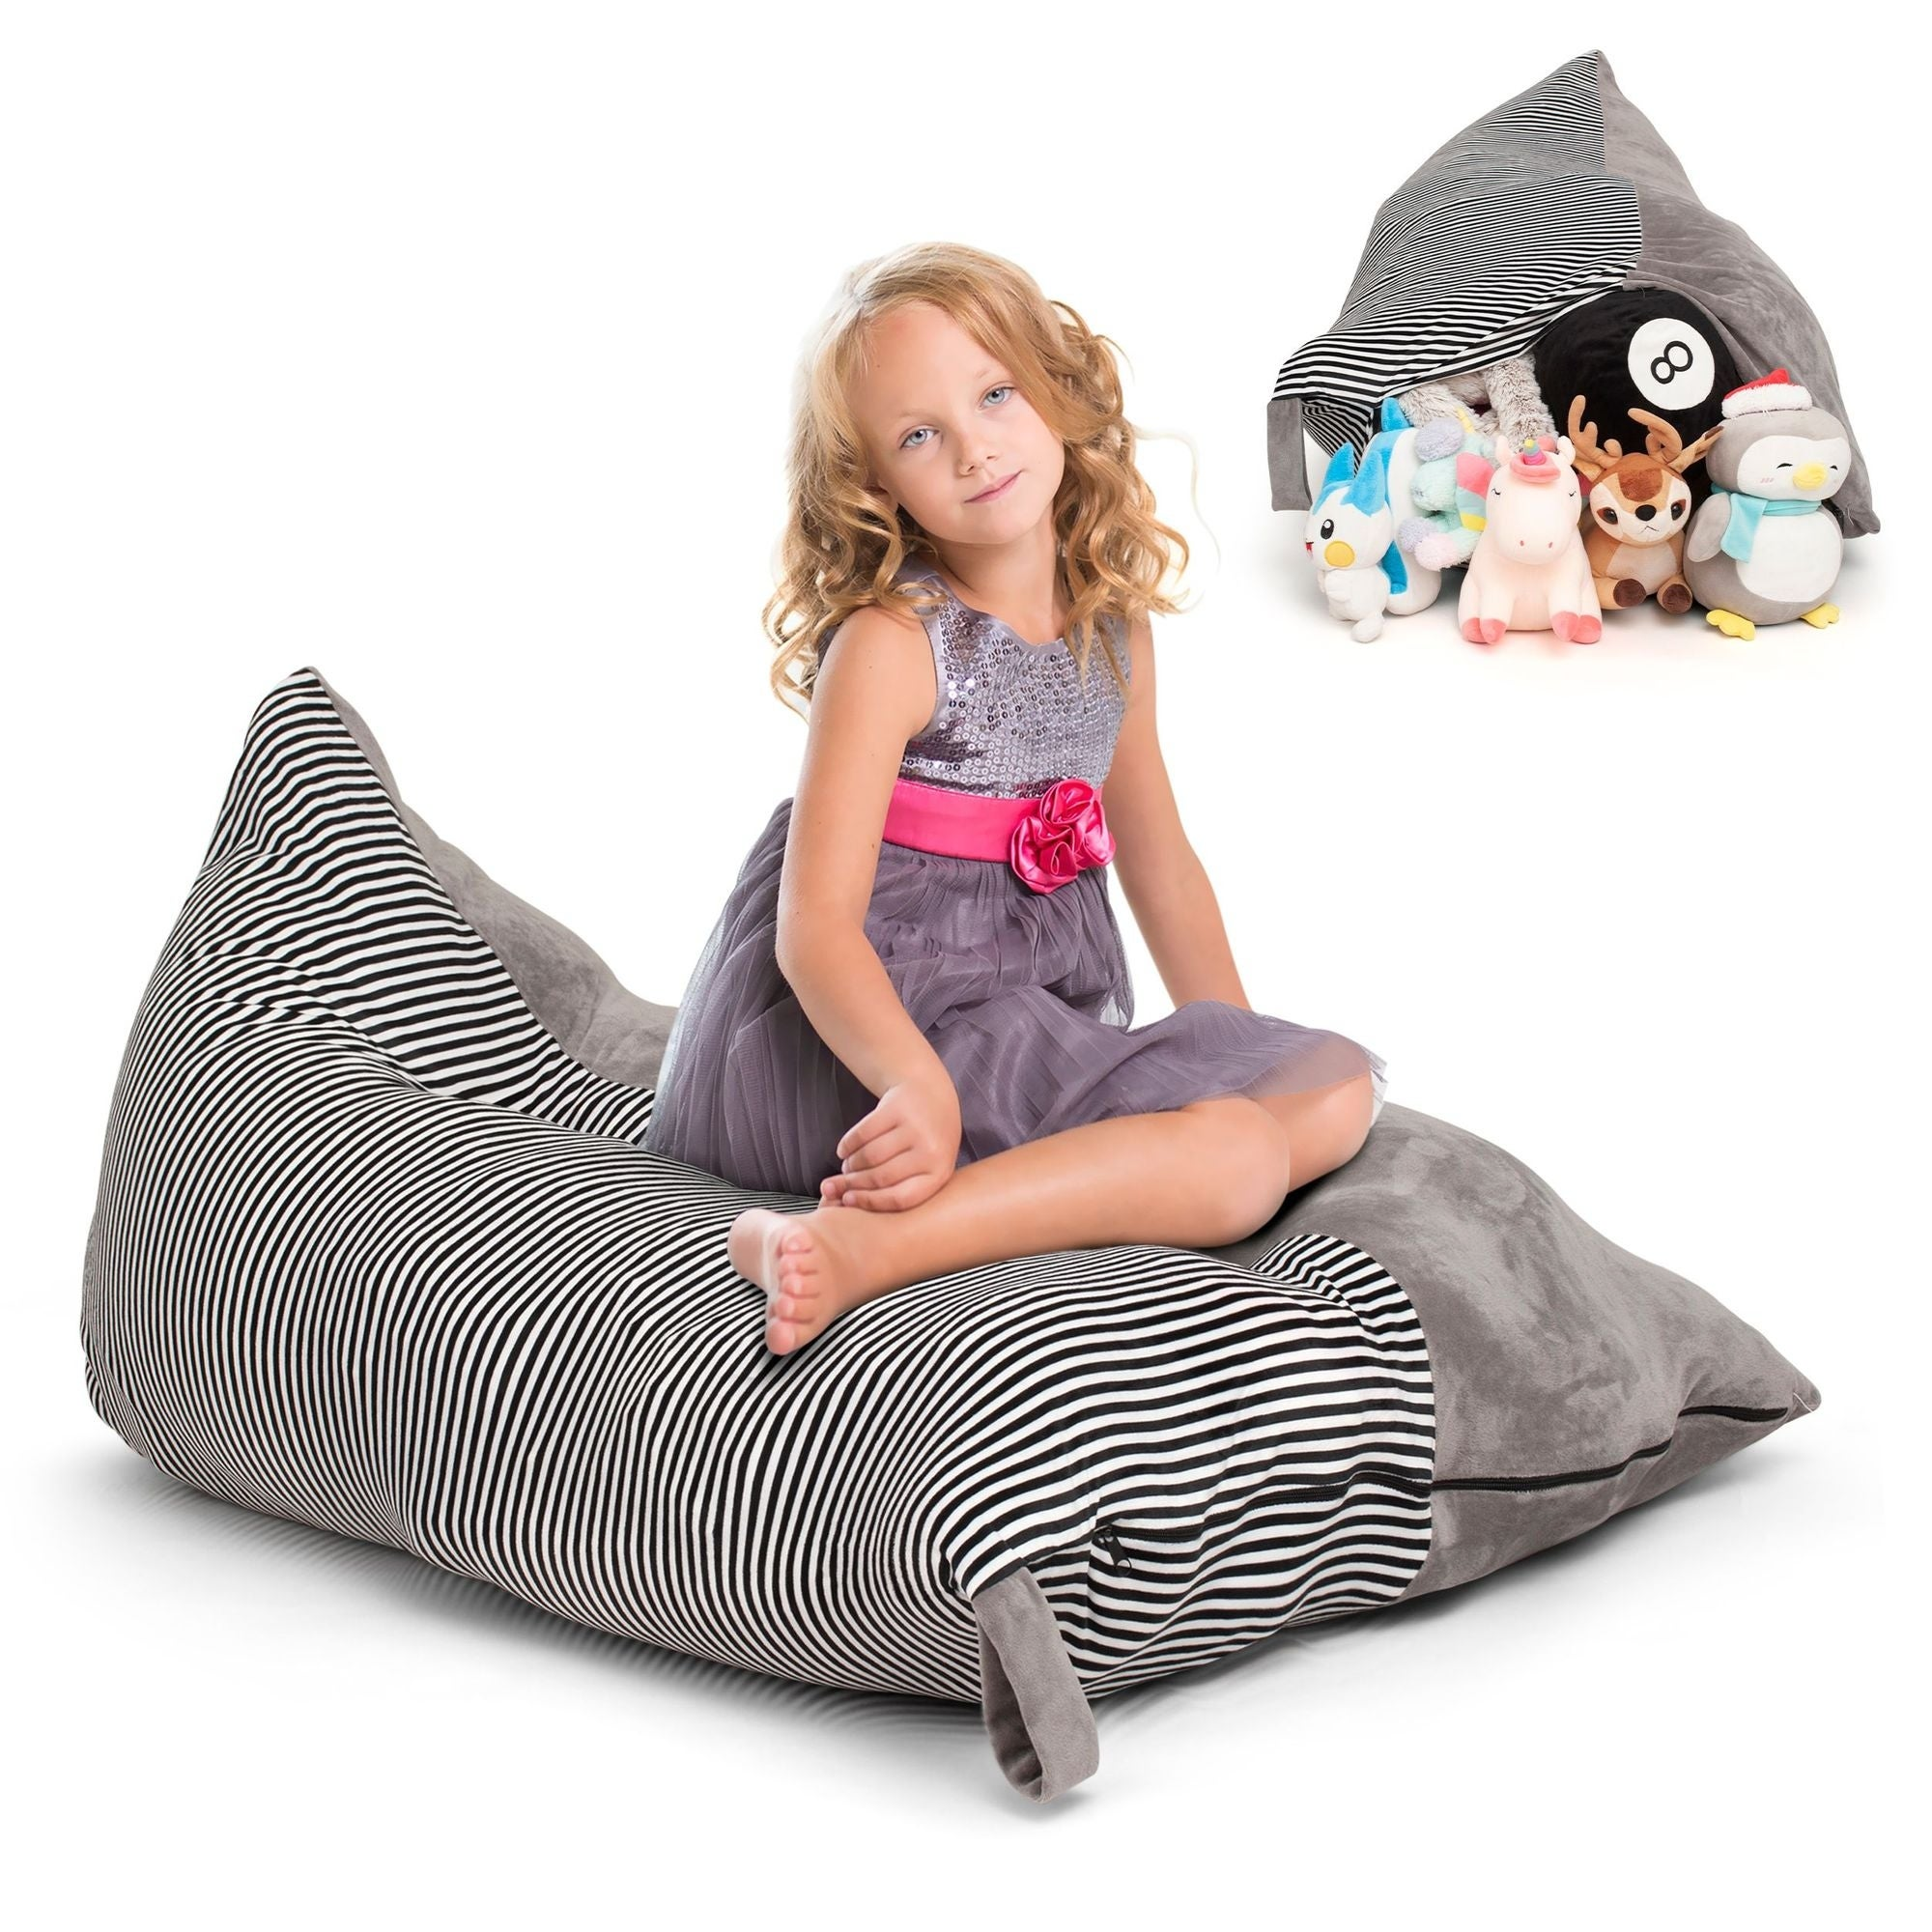 Fur Real Stuffed Animals, Shop Stuffed Toy Animal Plushies Storage Bean Bag Chair Seat Cover Gray Stripe Overstock 31930463